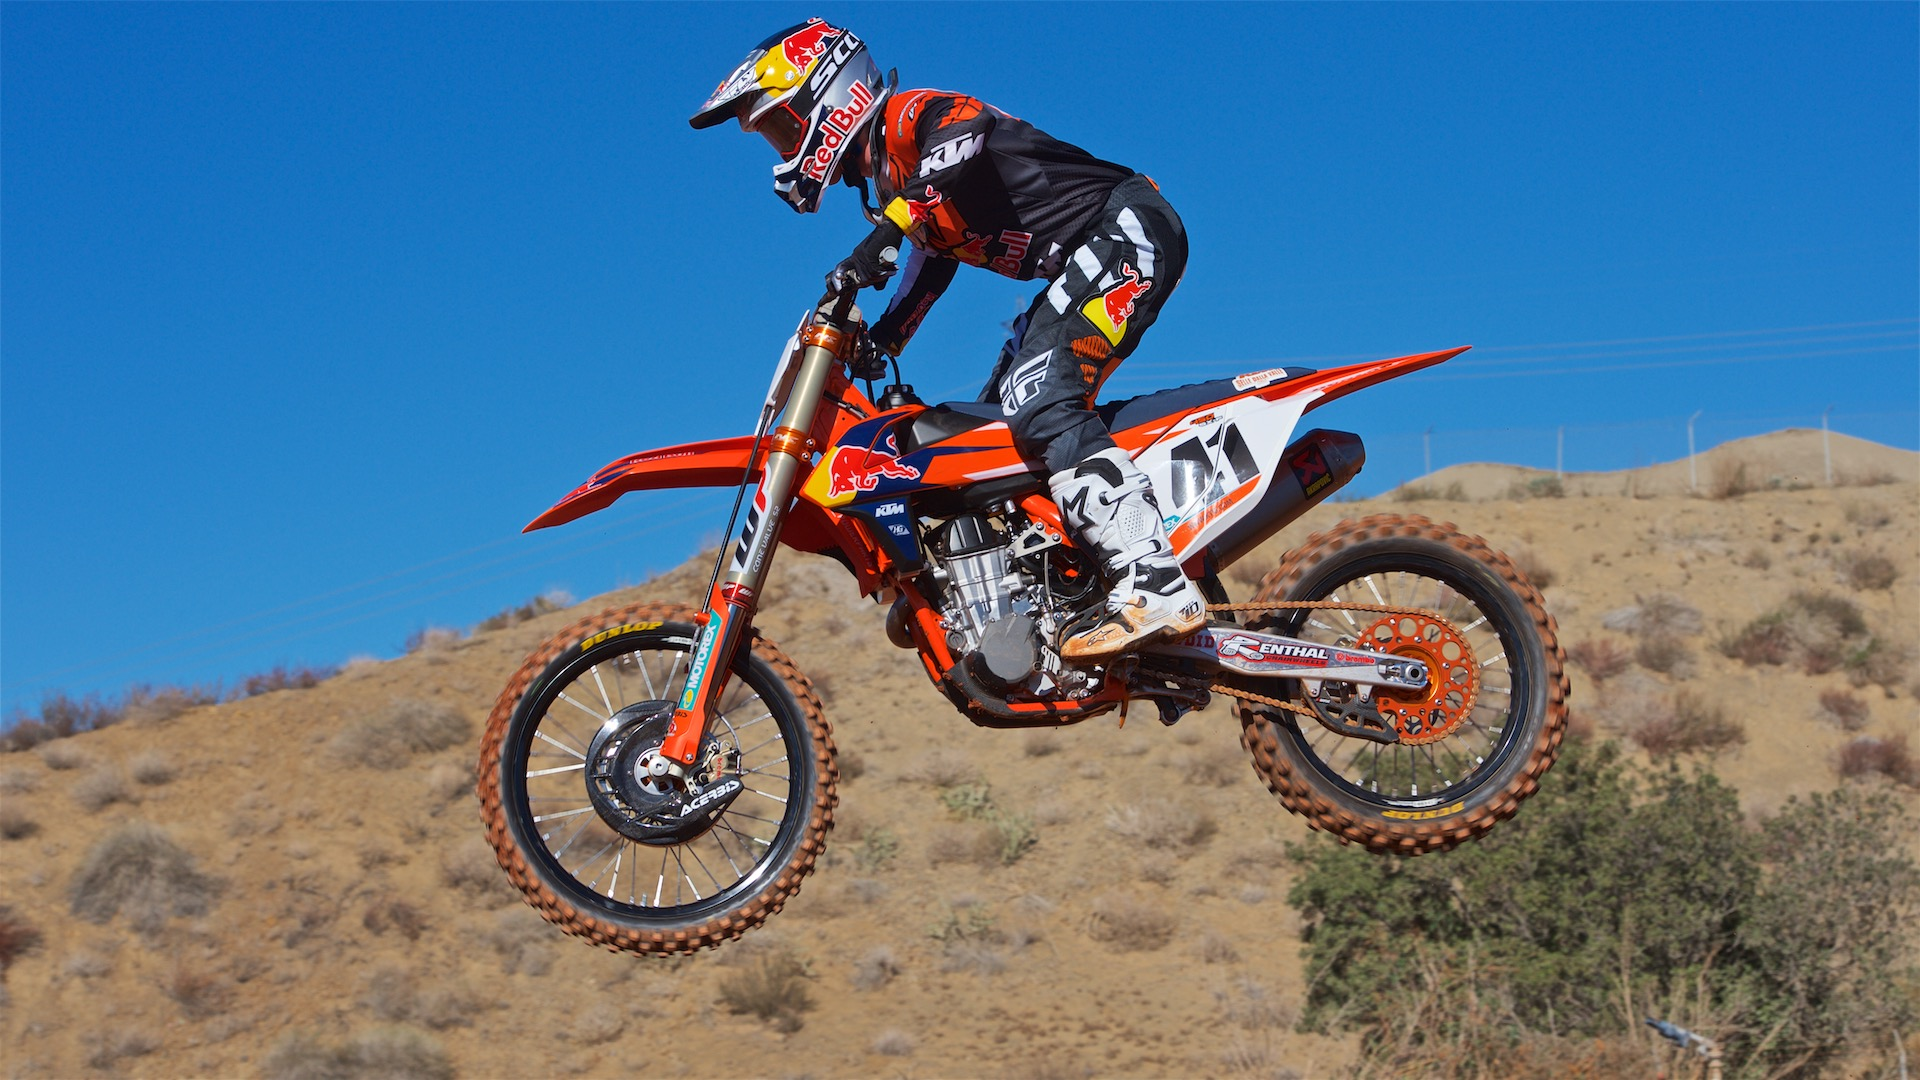 Motocross HD Wallpapers New Tab